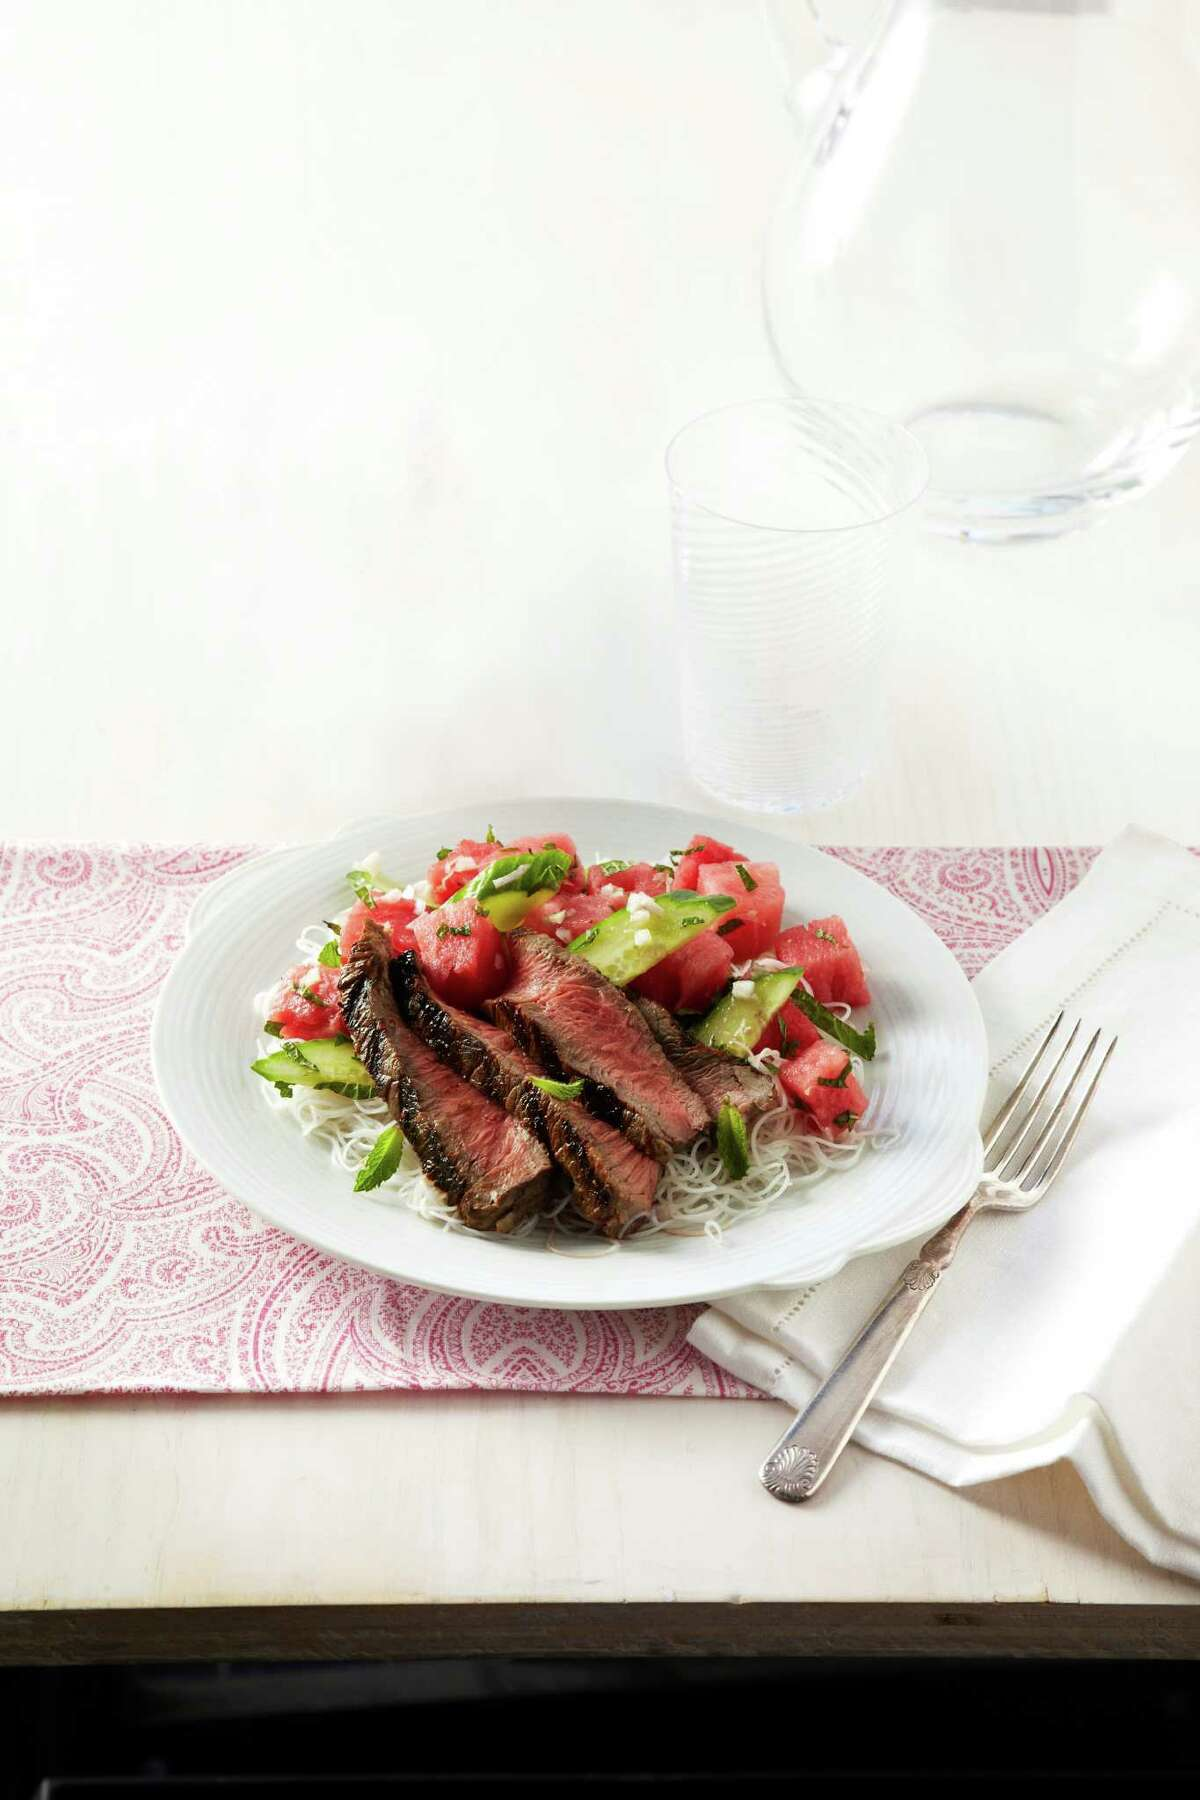 Good Housekeeping recipe for Seared Steak with Minted Watermelon.